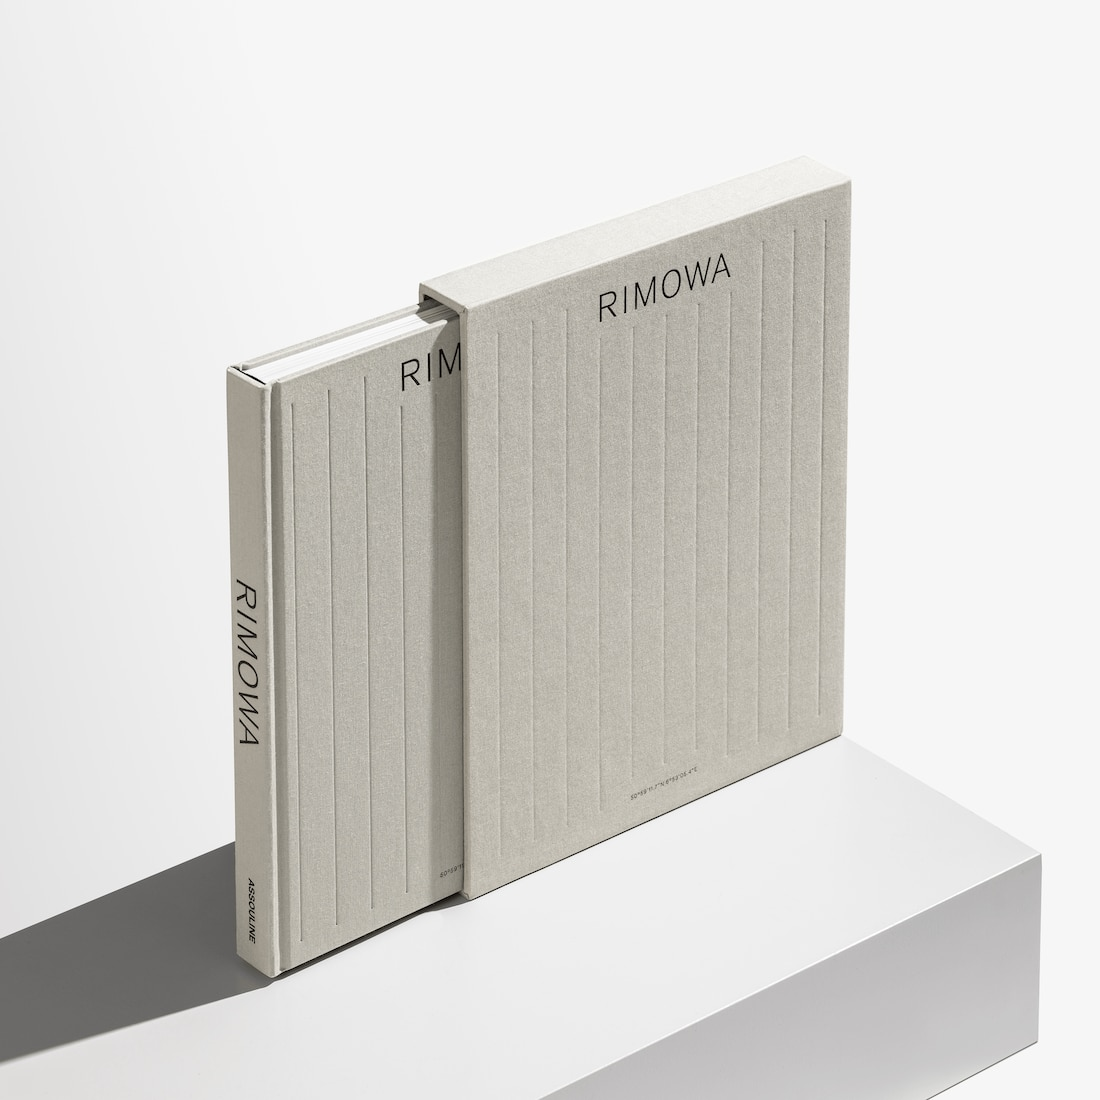 RIMOWA Book by Assouline - Limited Edition